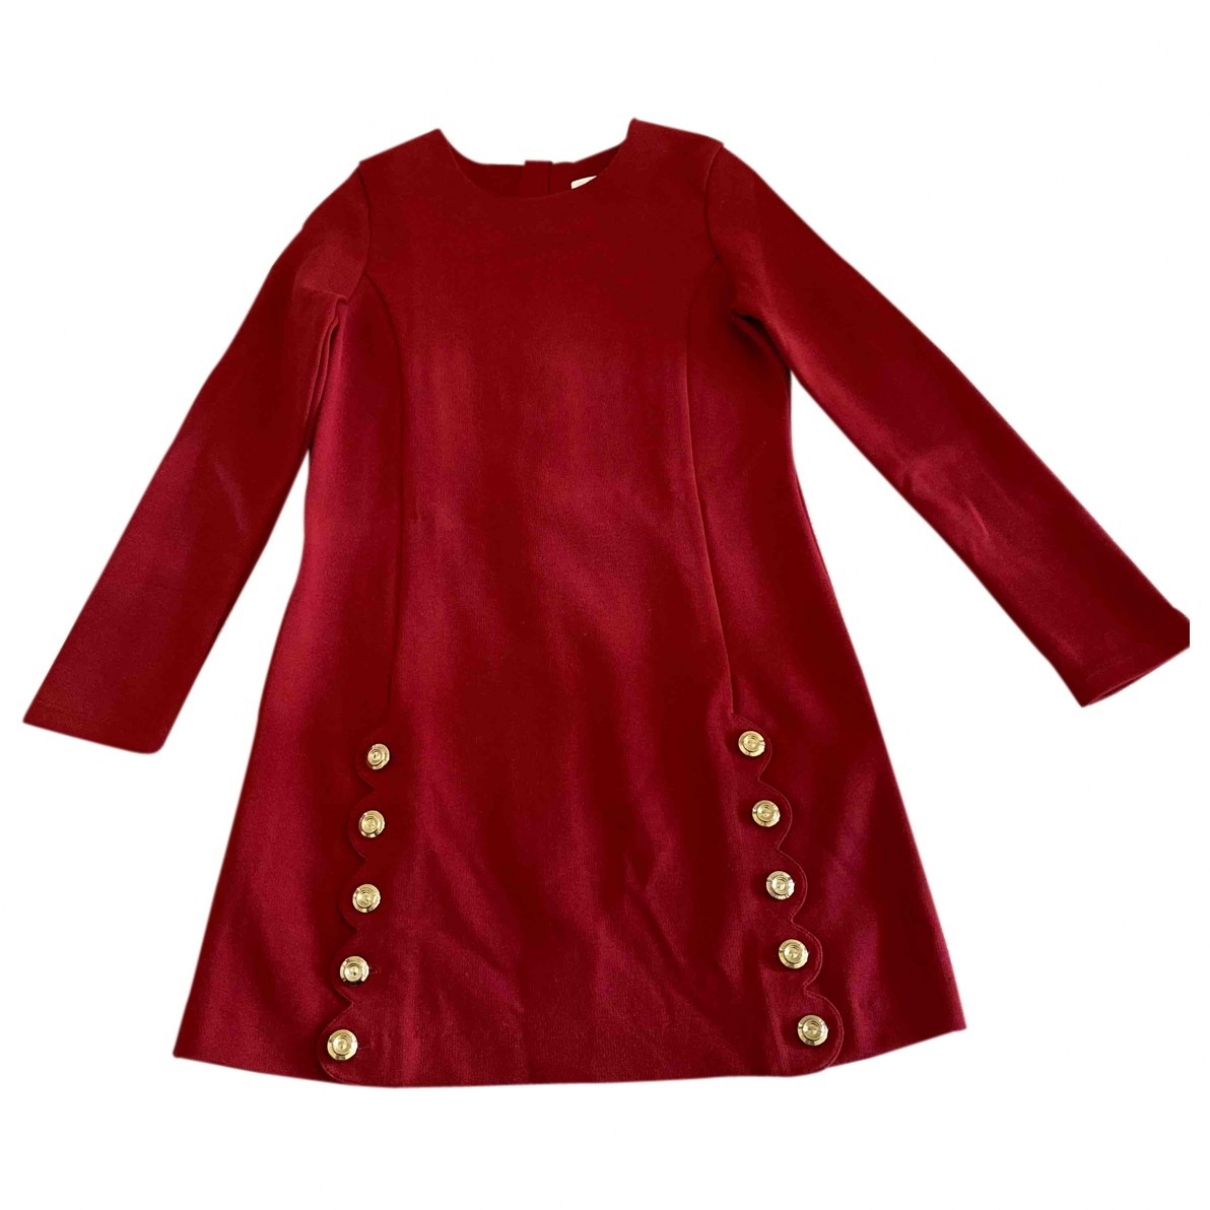 Chloé \N Red Cotton - elasthane dress for Kids 8 years - until 50 inches UK